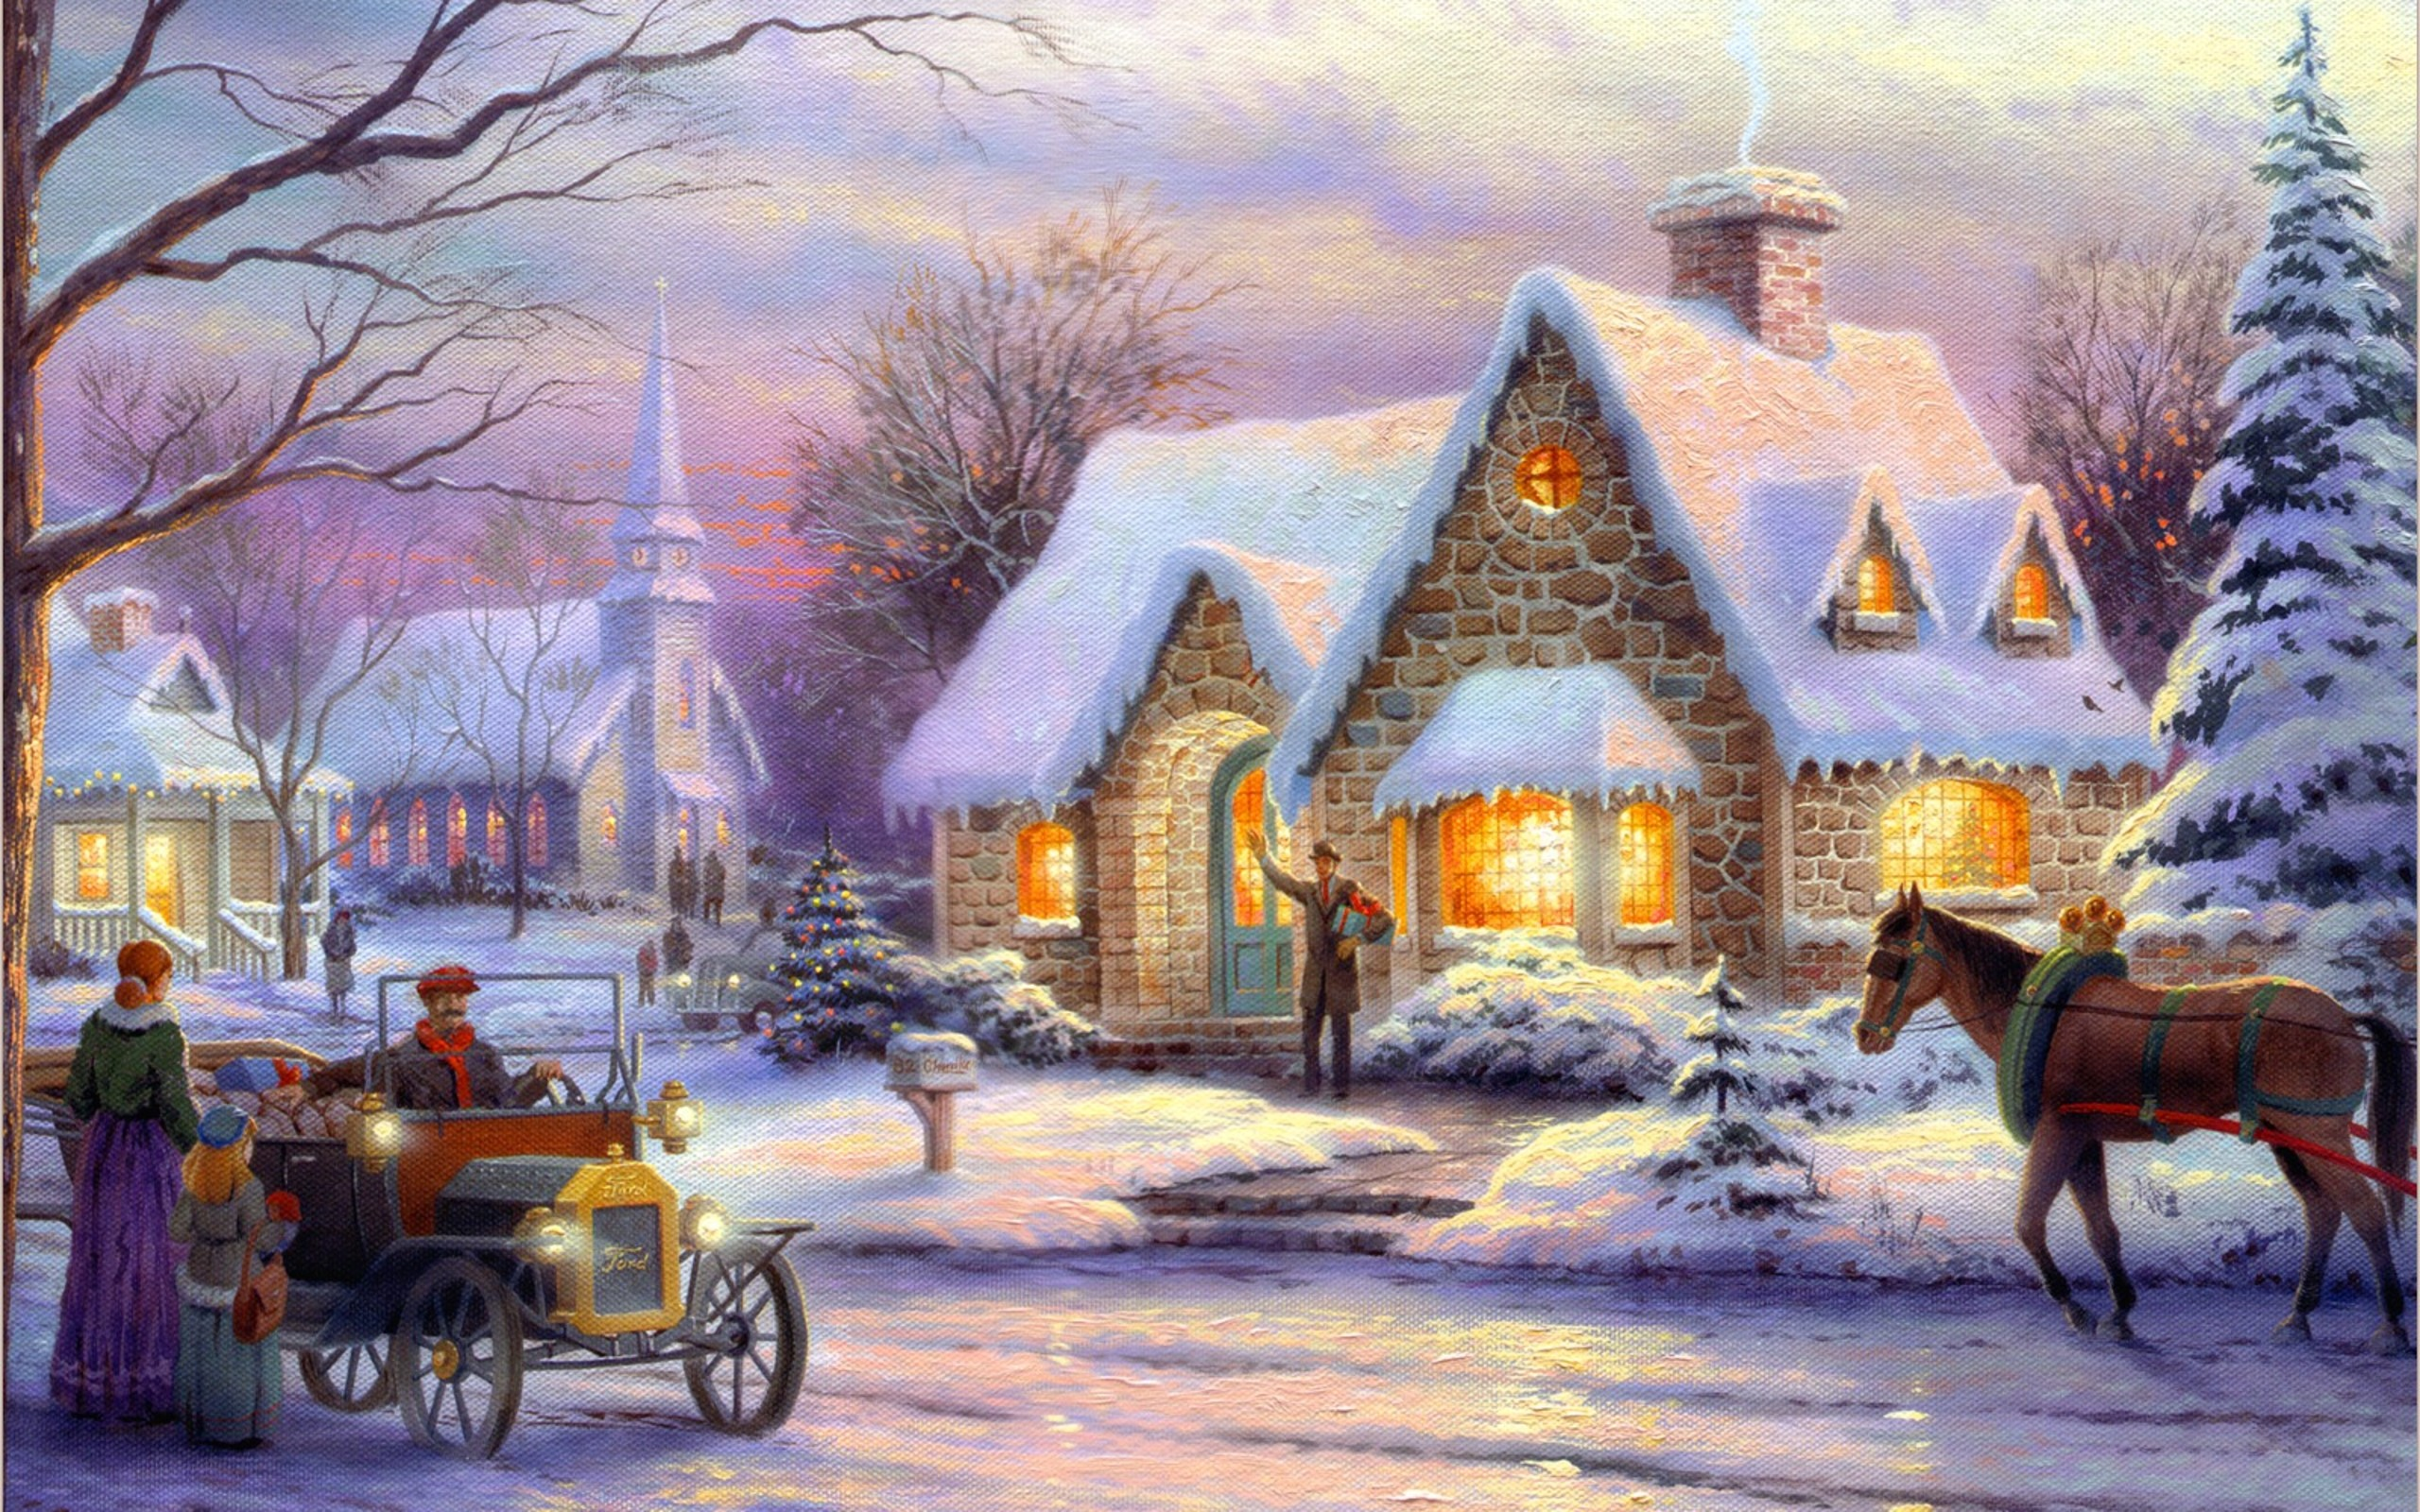 Christmas Art Wallpapers High Quality | Download Free